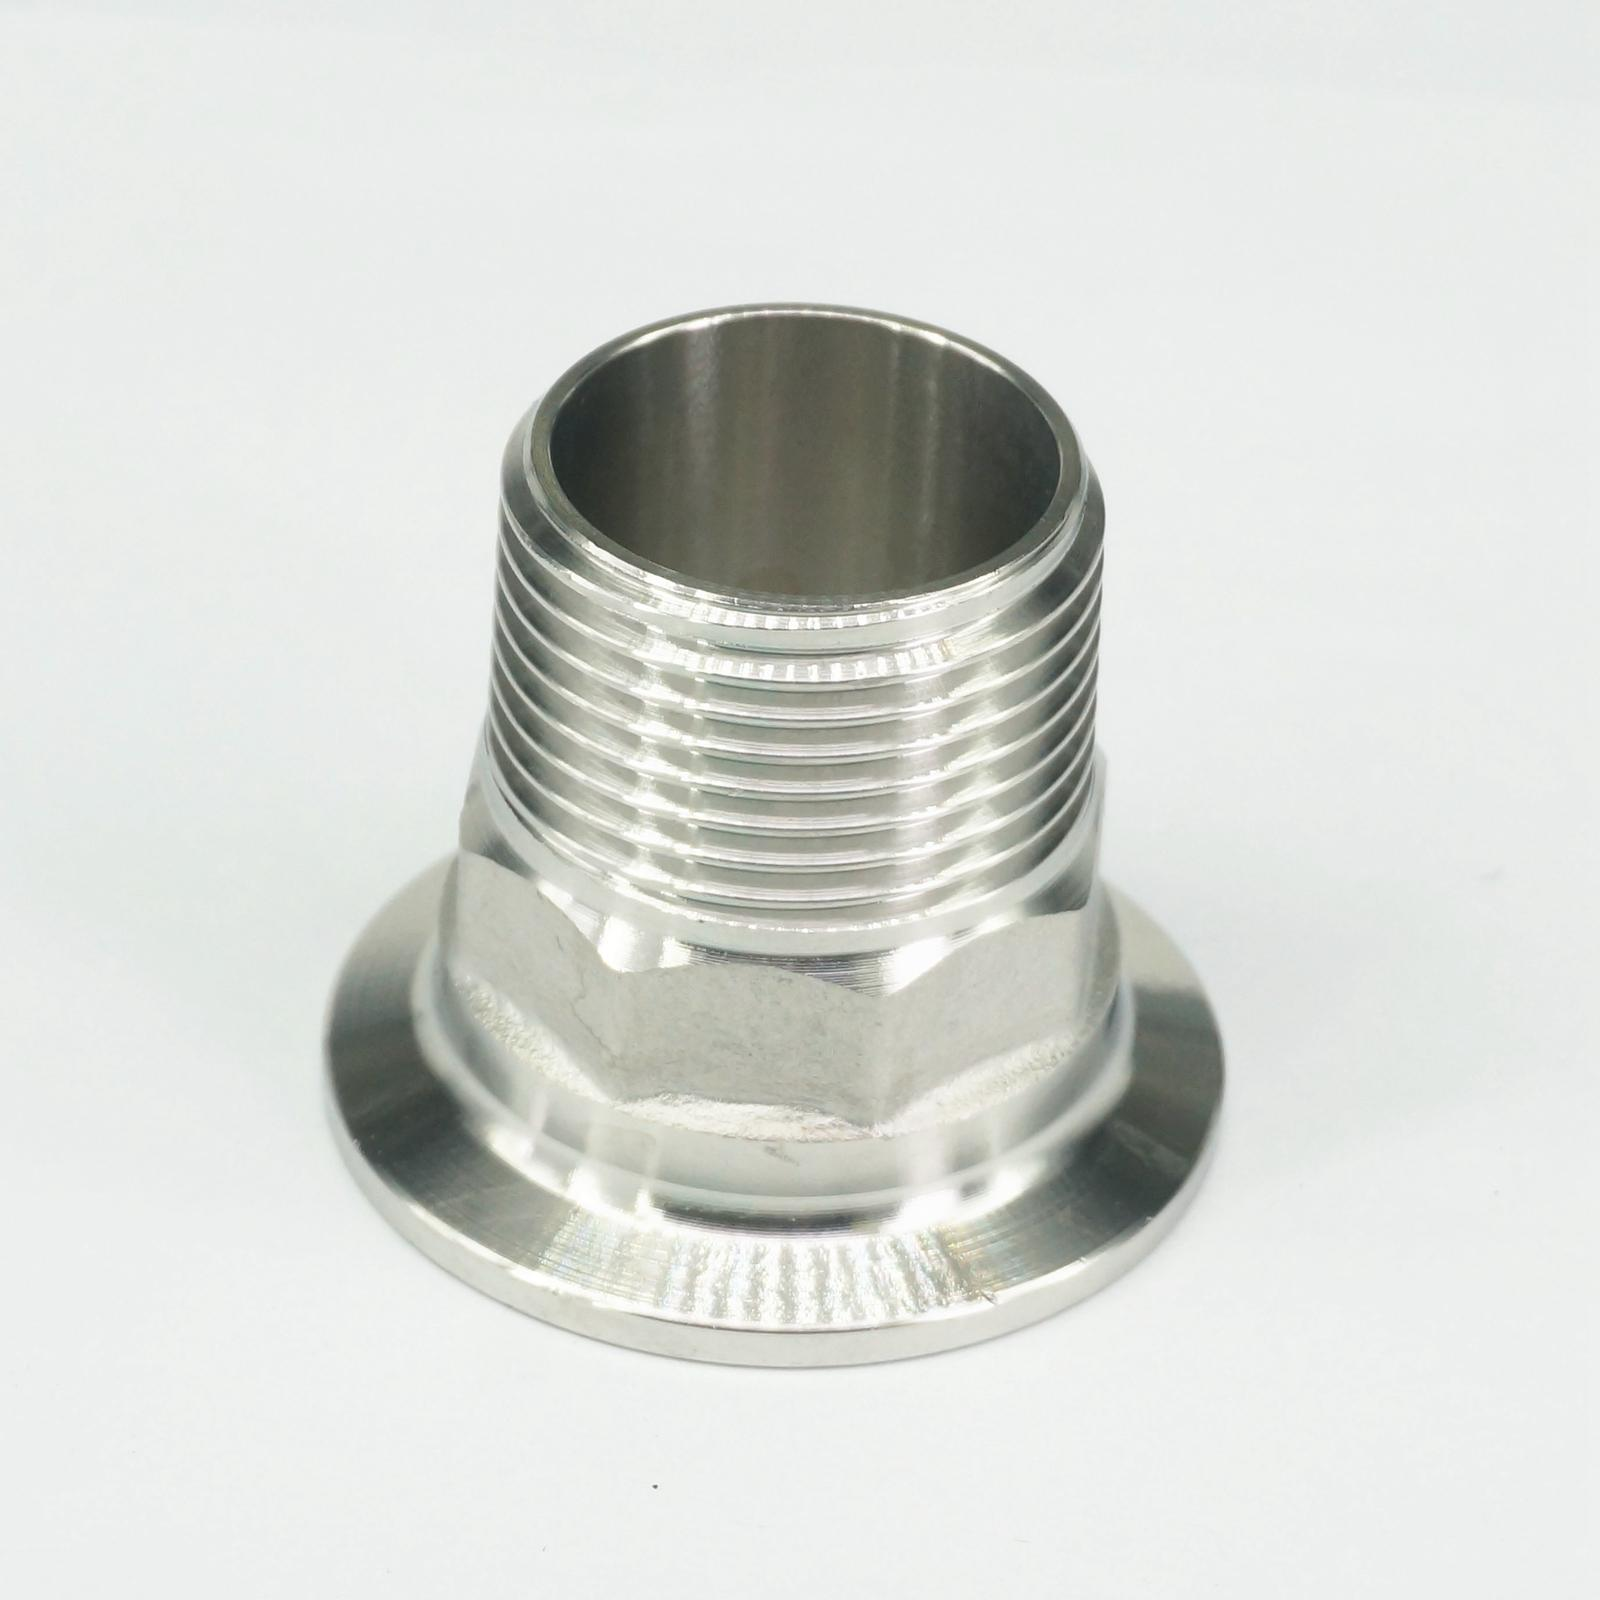 1 BSP Male x 1.5 Tri Clamp 304 Stainless Steel Pipe Fitting Connector For Homebrew with Hex nut 1pc stainless steel ss304 male x male threaded pipe fitting 200mm bsp 1 4 1 2 3 4 1